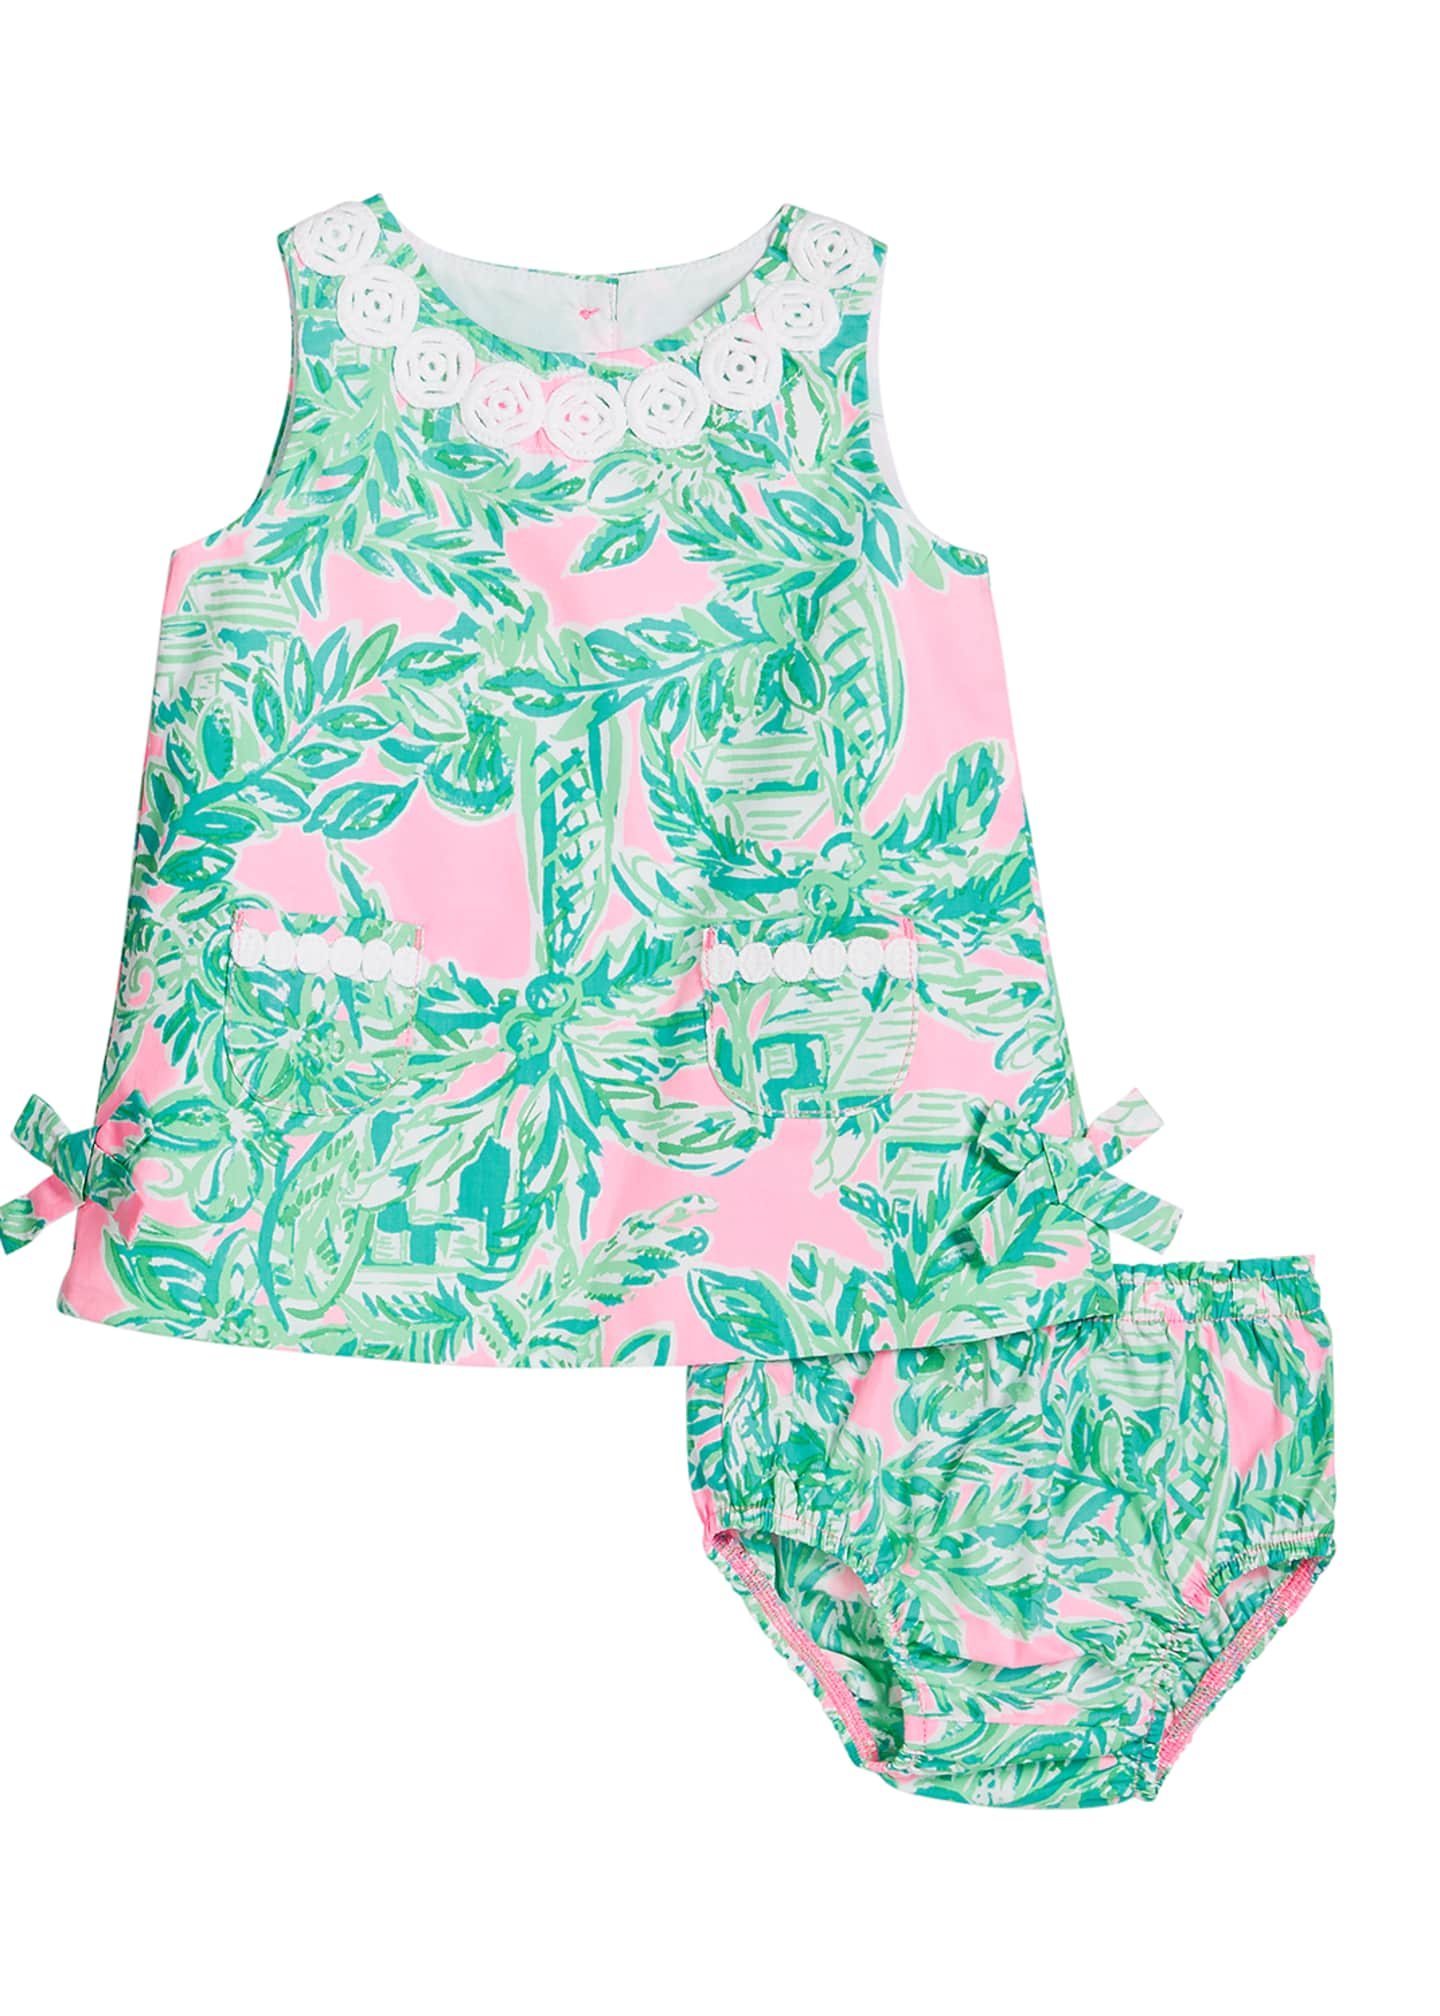 Lilly Pulitzer Girl's Lilly Printed Shift Dress w/